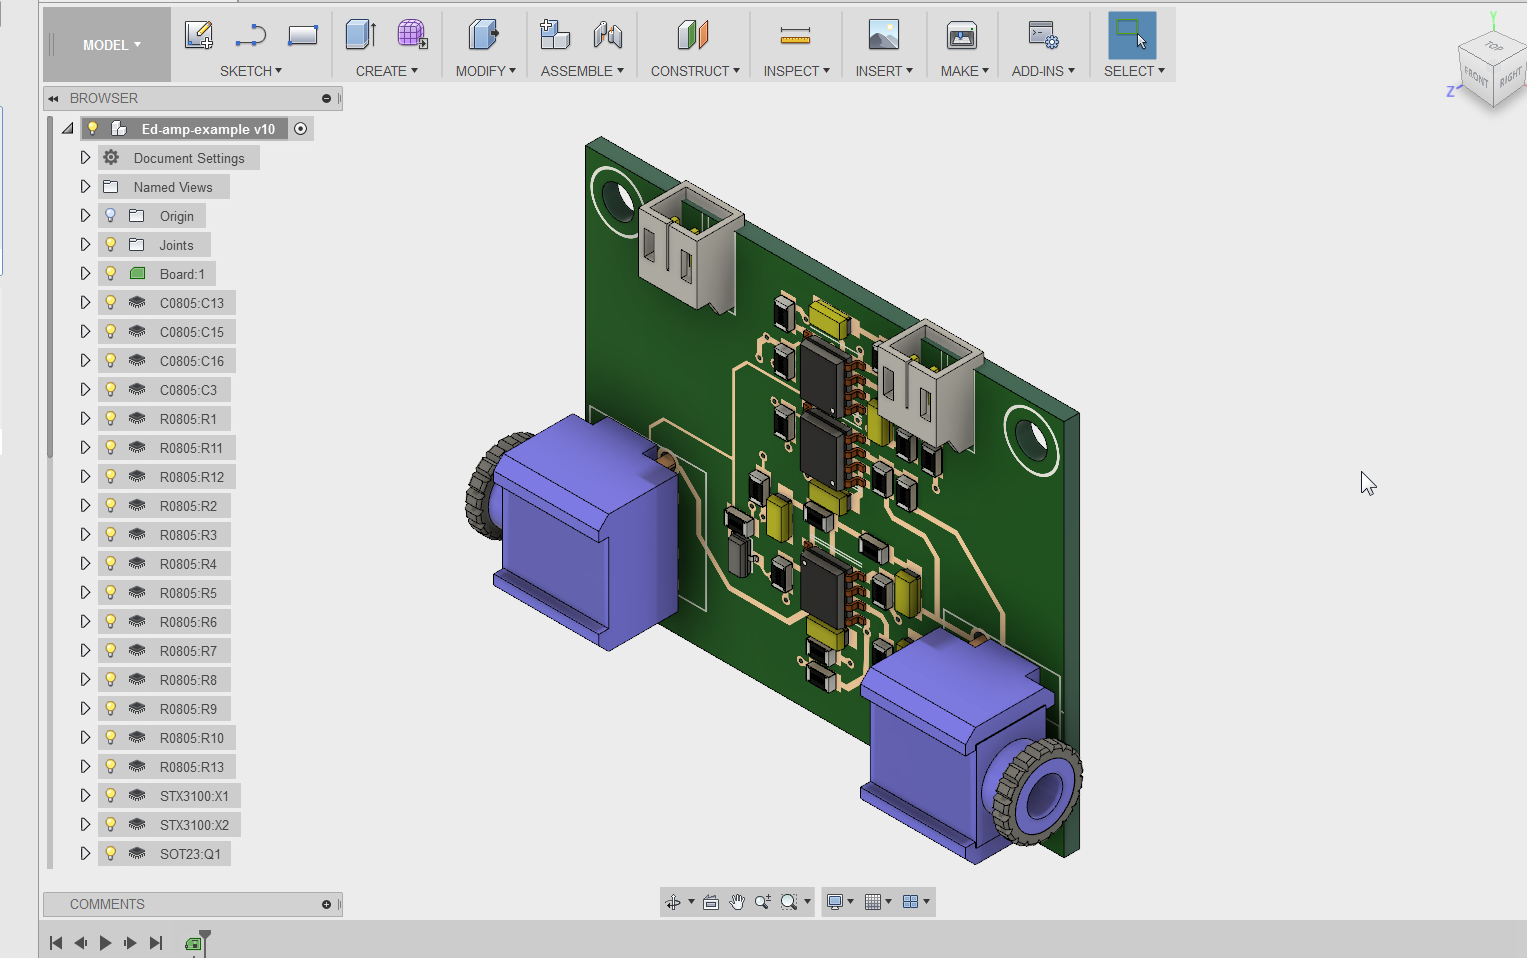 7 Best Arduino Pc Simulators For Windows Circuit Design And Simulation Free Electronics Software Download Developed By The Well Known Autodesk Eagle Is Available Or In A Pro Version With Which We Have Complete Set Of Pcb